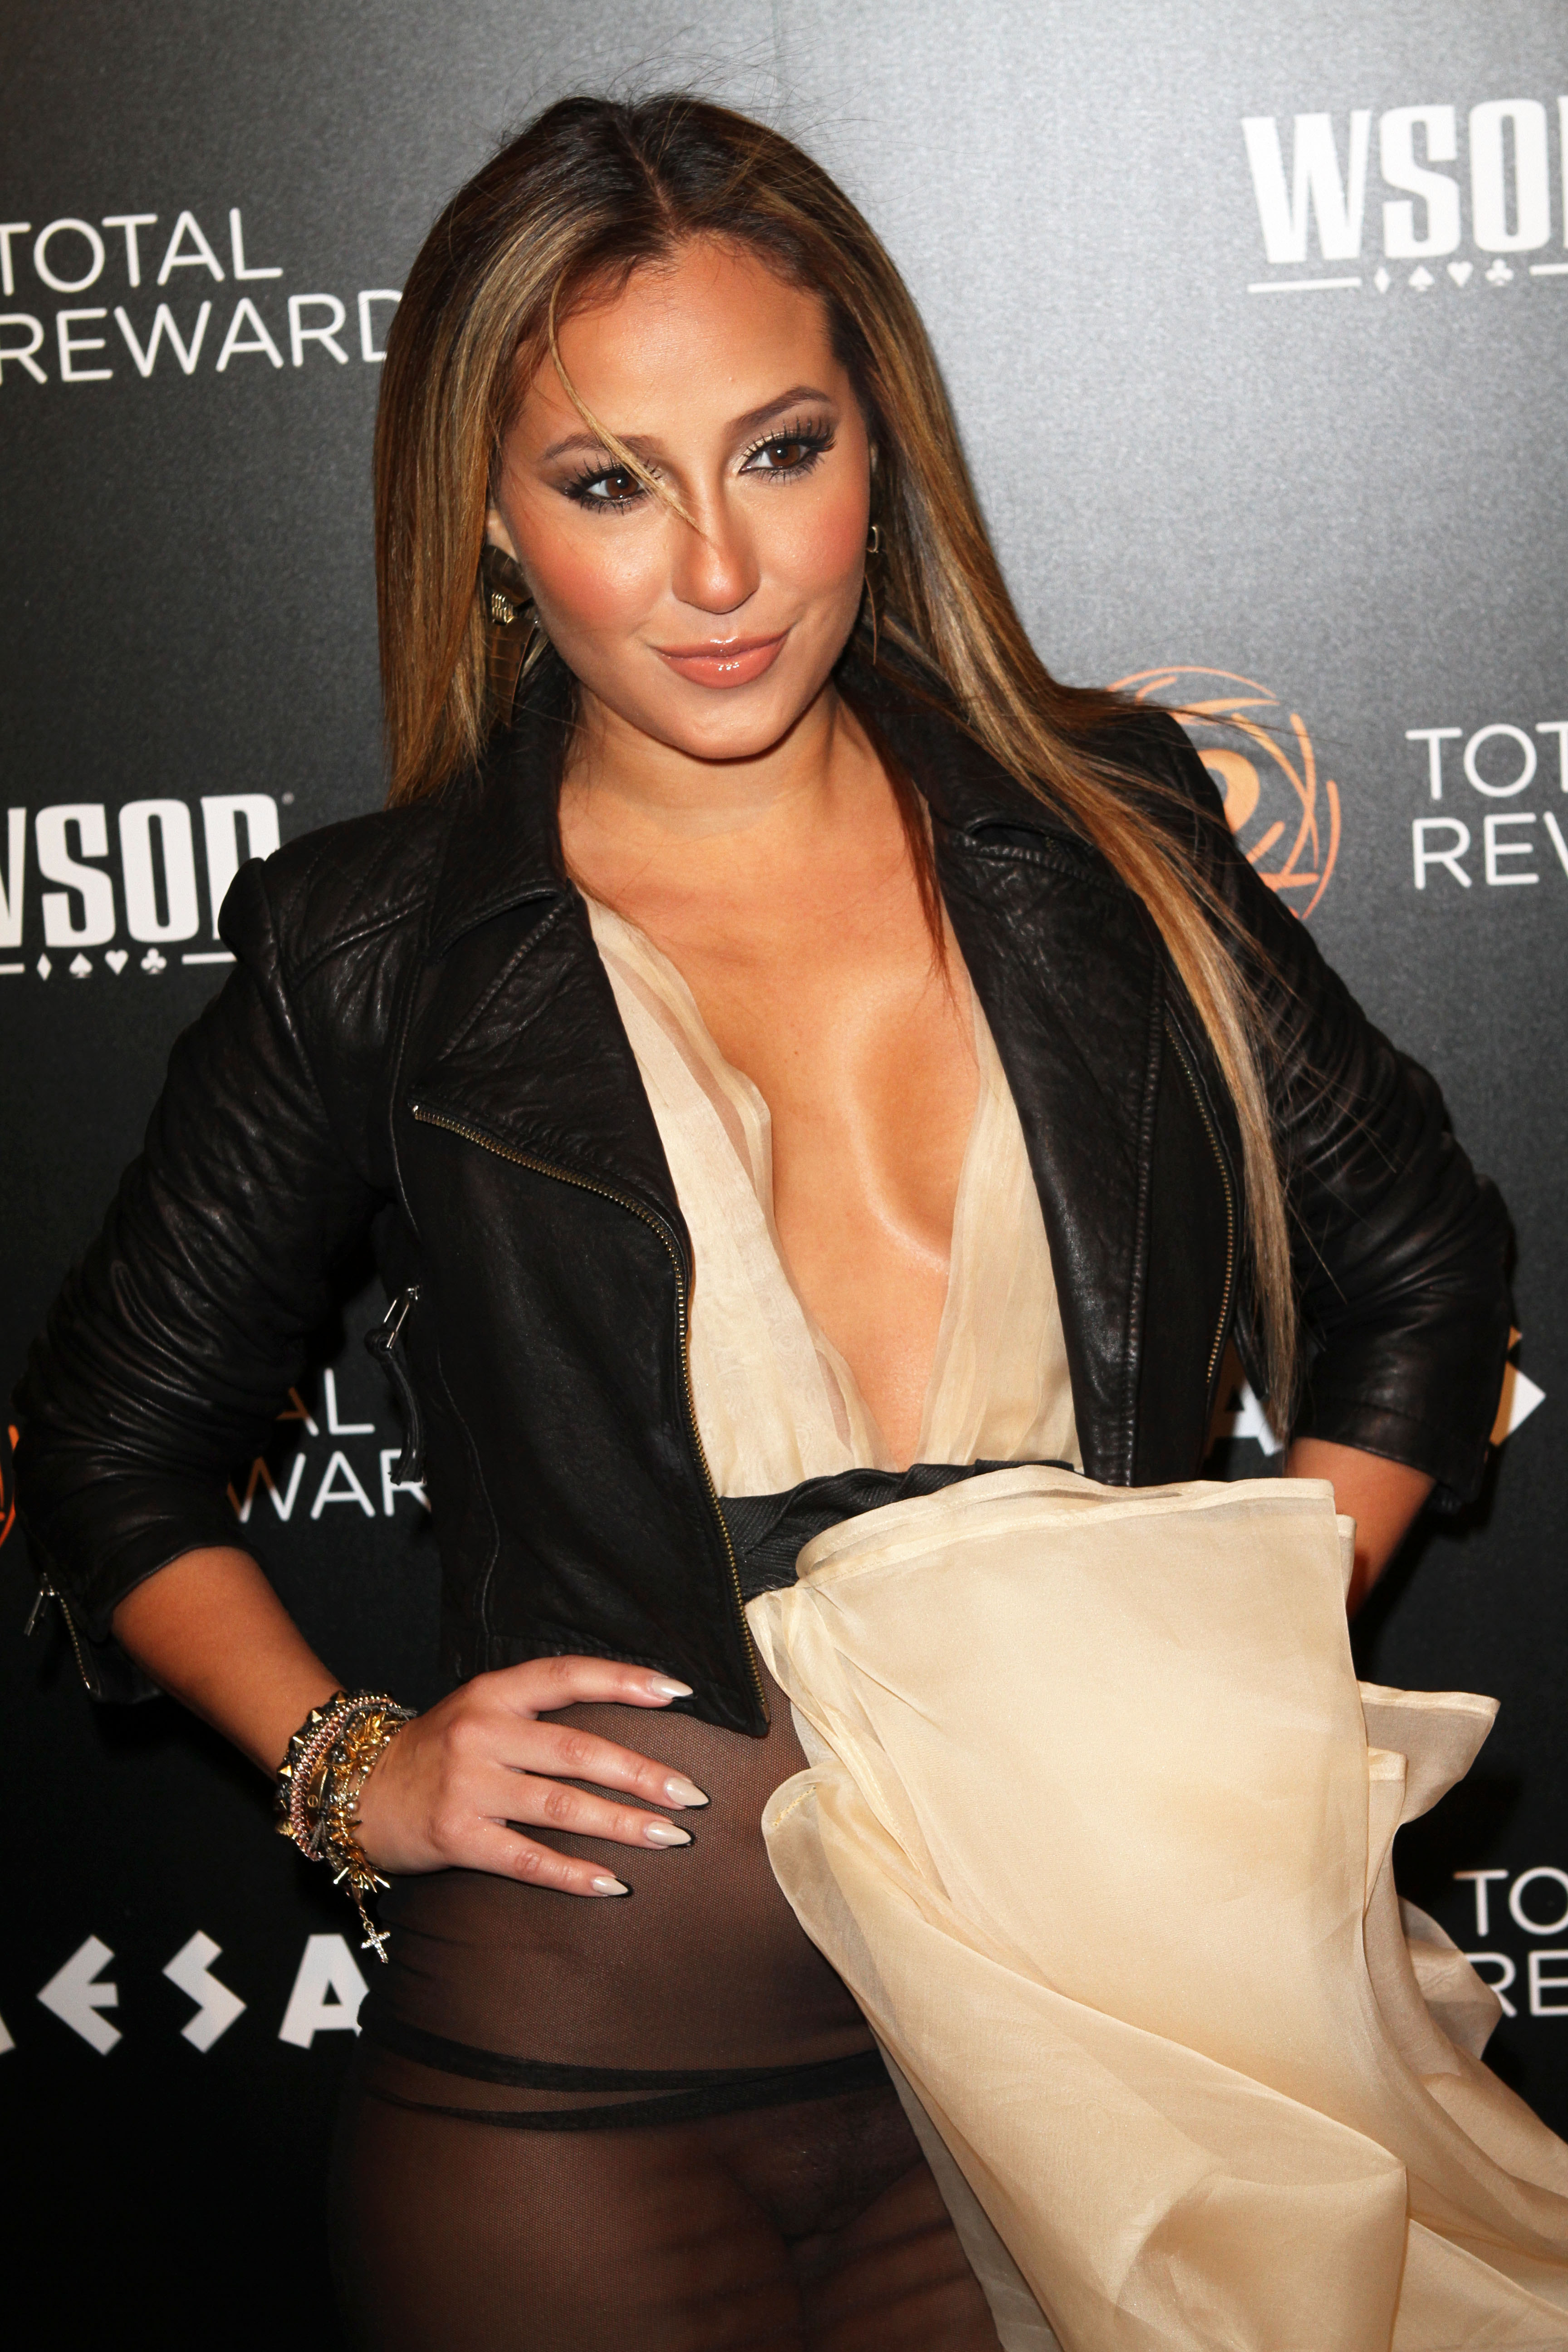 Adrienne body bailon her showing naked